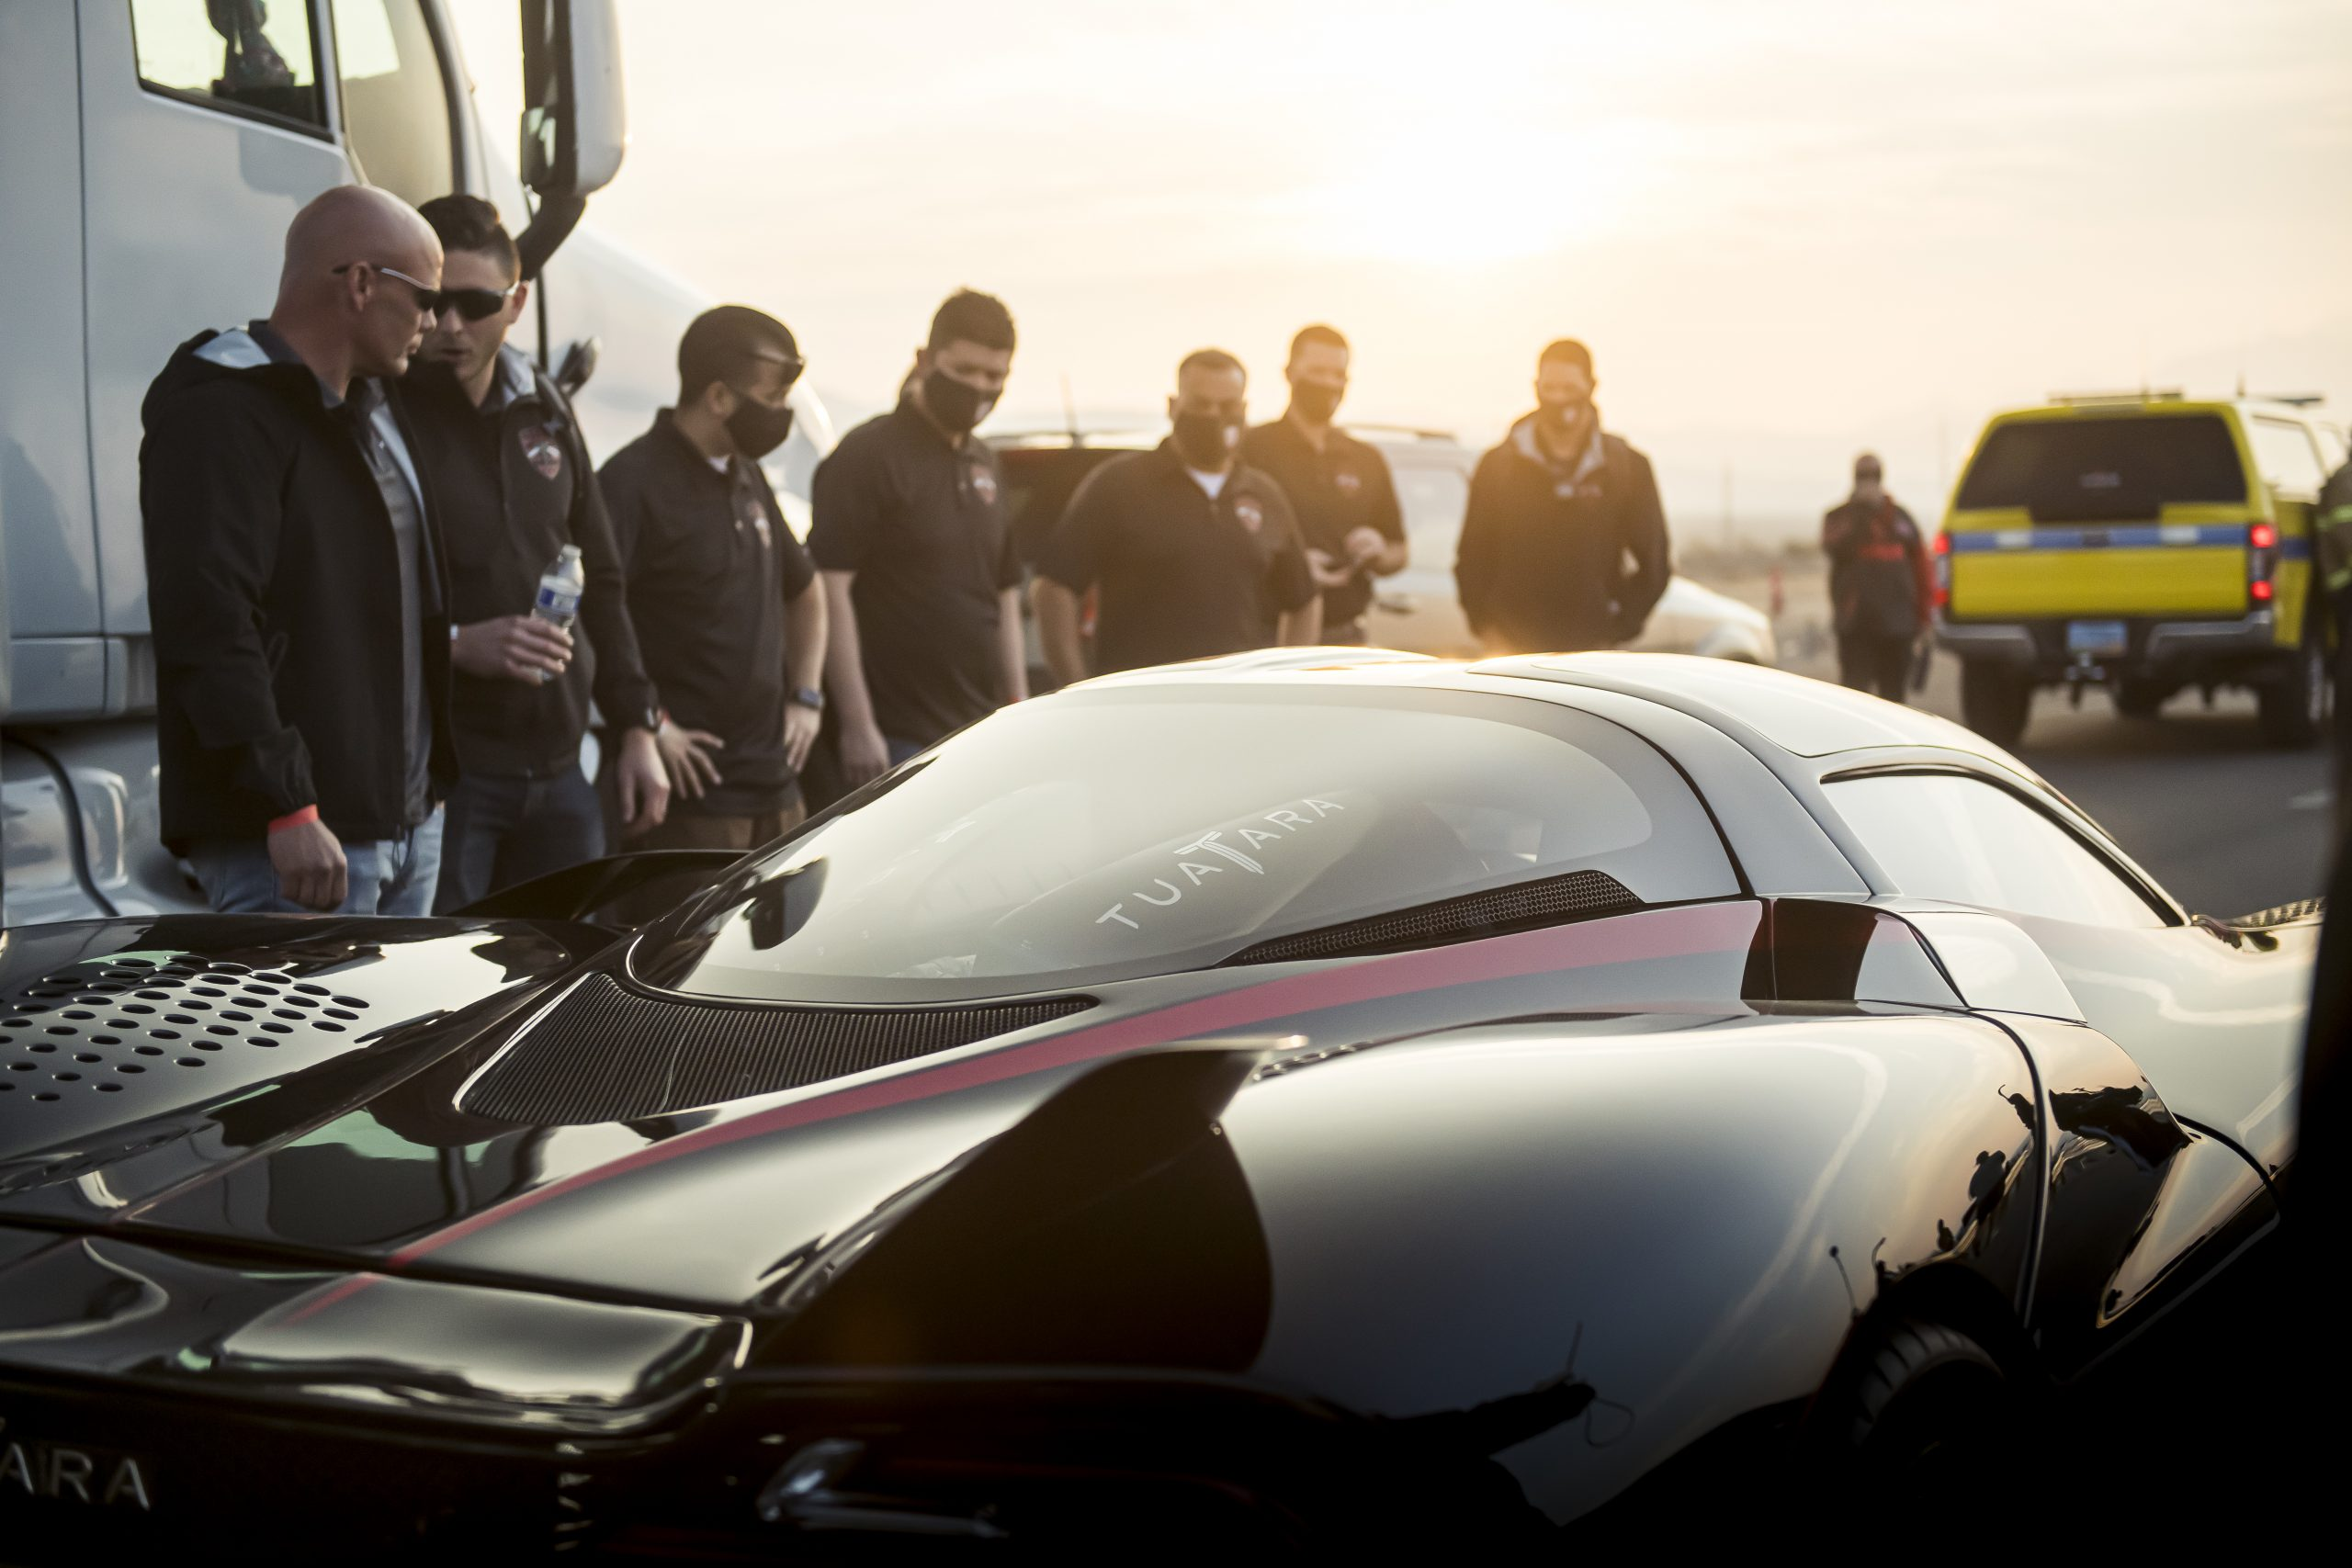 SSC Tuatara Production Car Speed Record team gathered